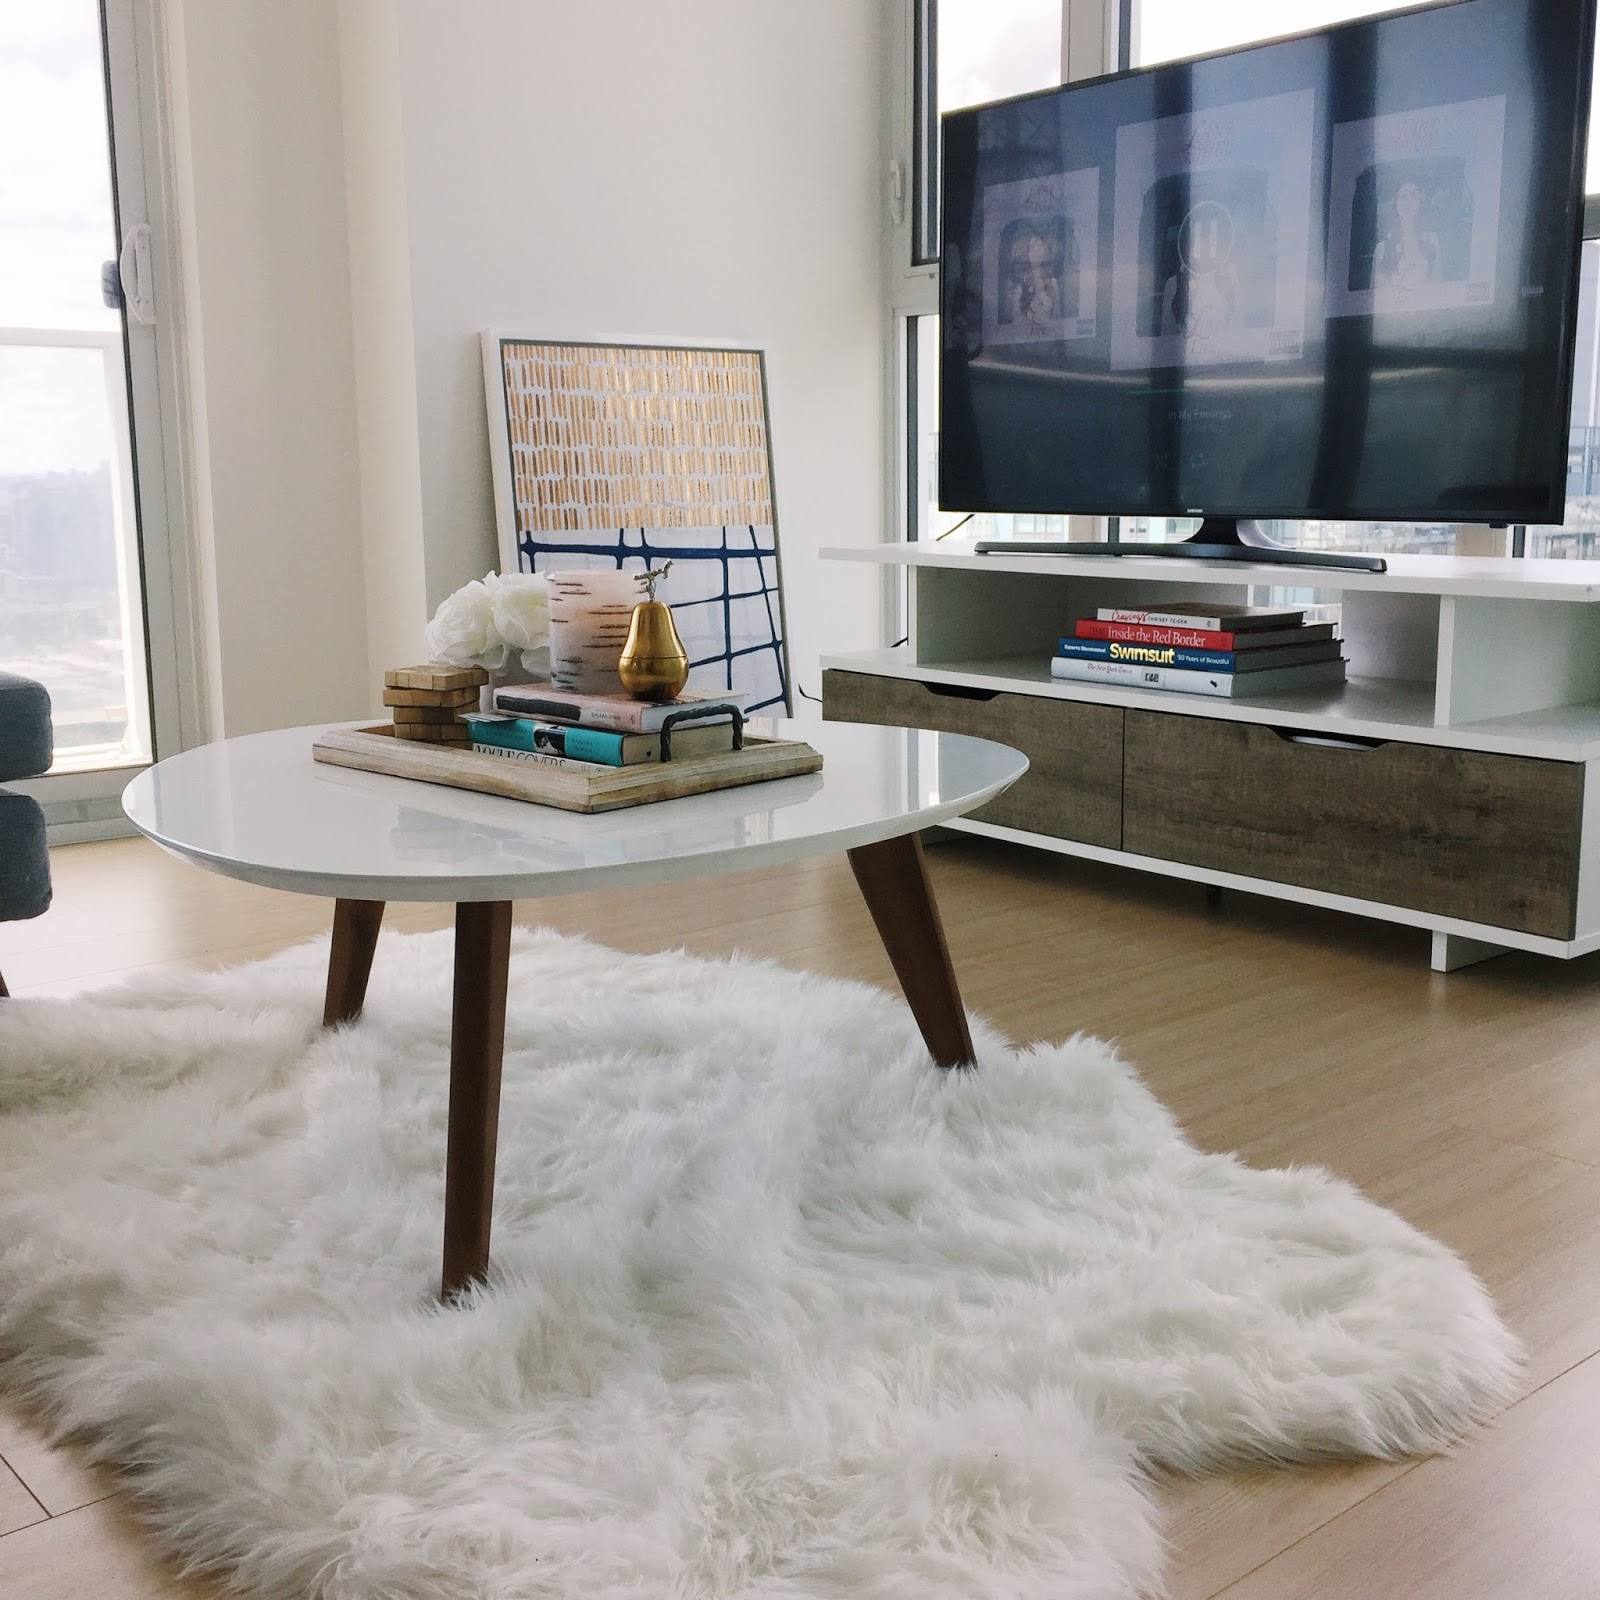 3 Ways to Turn Your Condo into a Home THE STANDARD CHIC